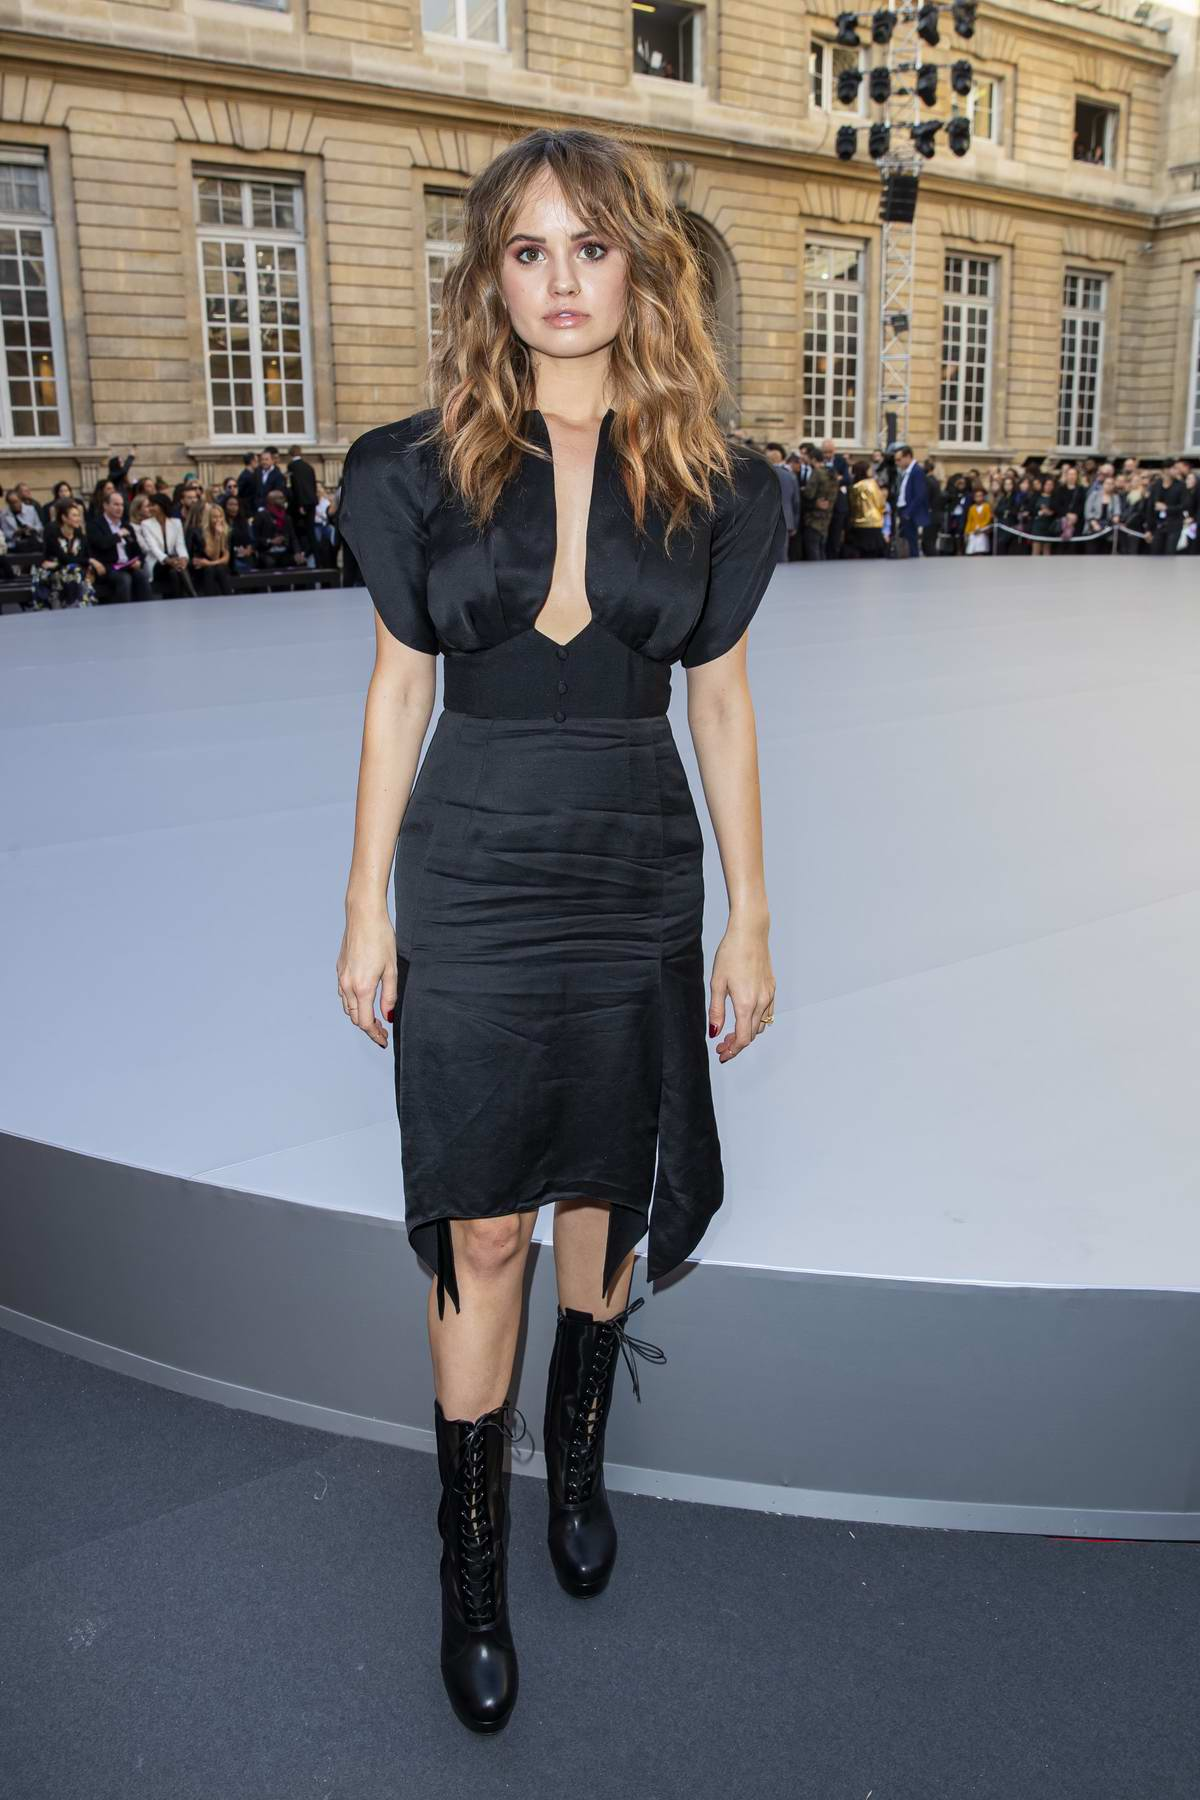 Debby Ryan attends 'Le Defile L'Oreal Paris' show during Paris Fashion Week in Paris, France